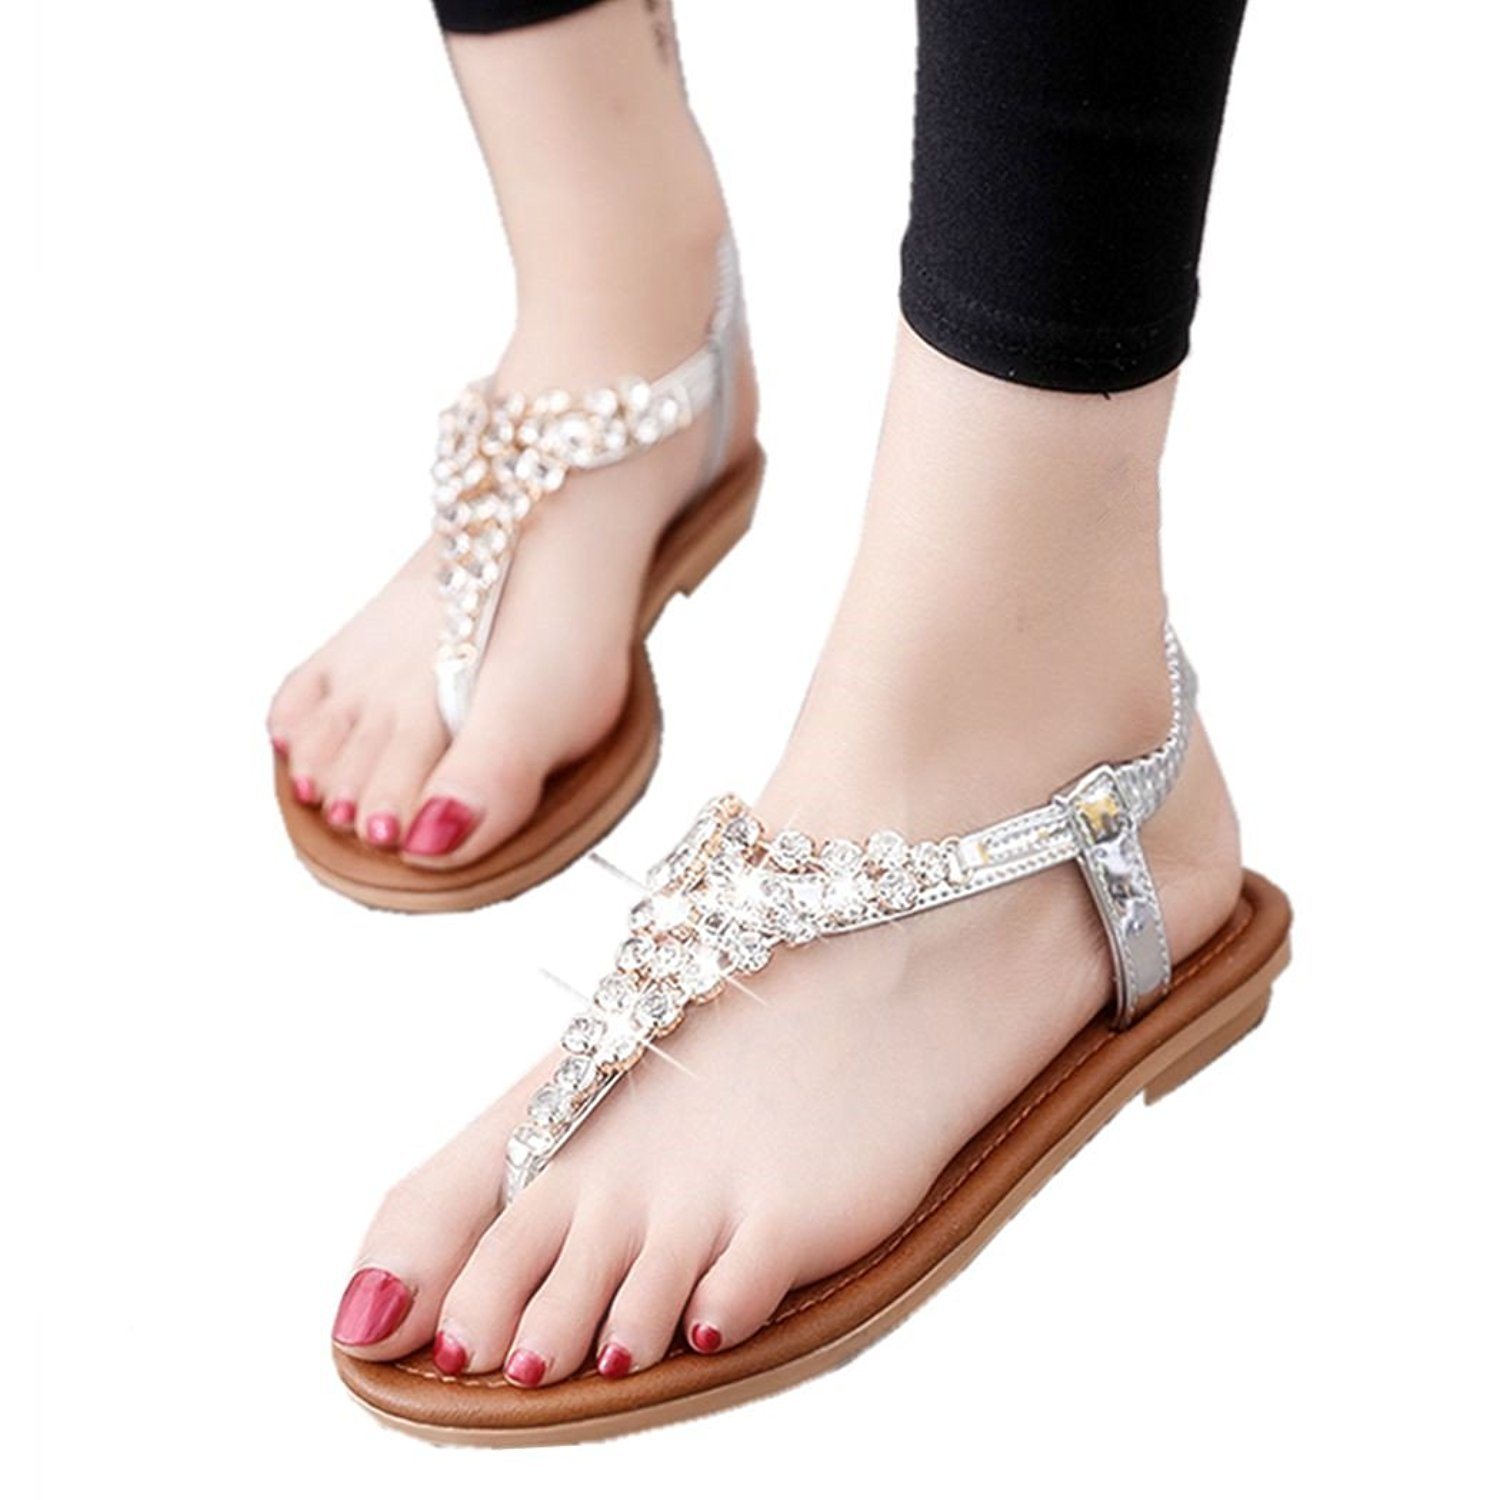 d58a72c3df0e Get Quotations · Womens Strappy Rhinestones Gladiator Sandals Low Heels  Flip Flop Ankle Strap Girls Thong Party Shoes